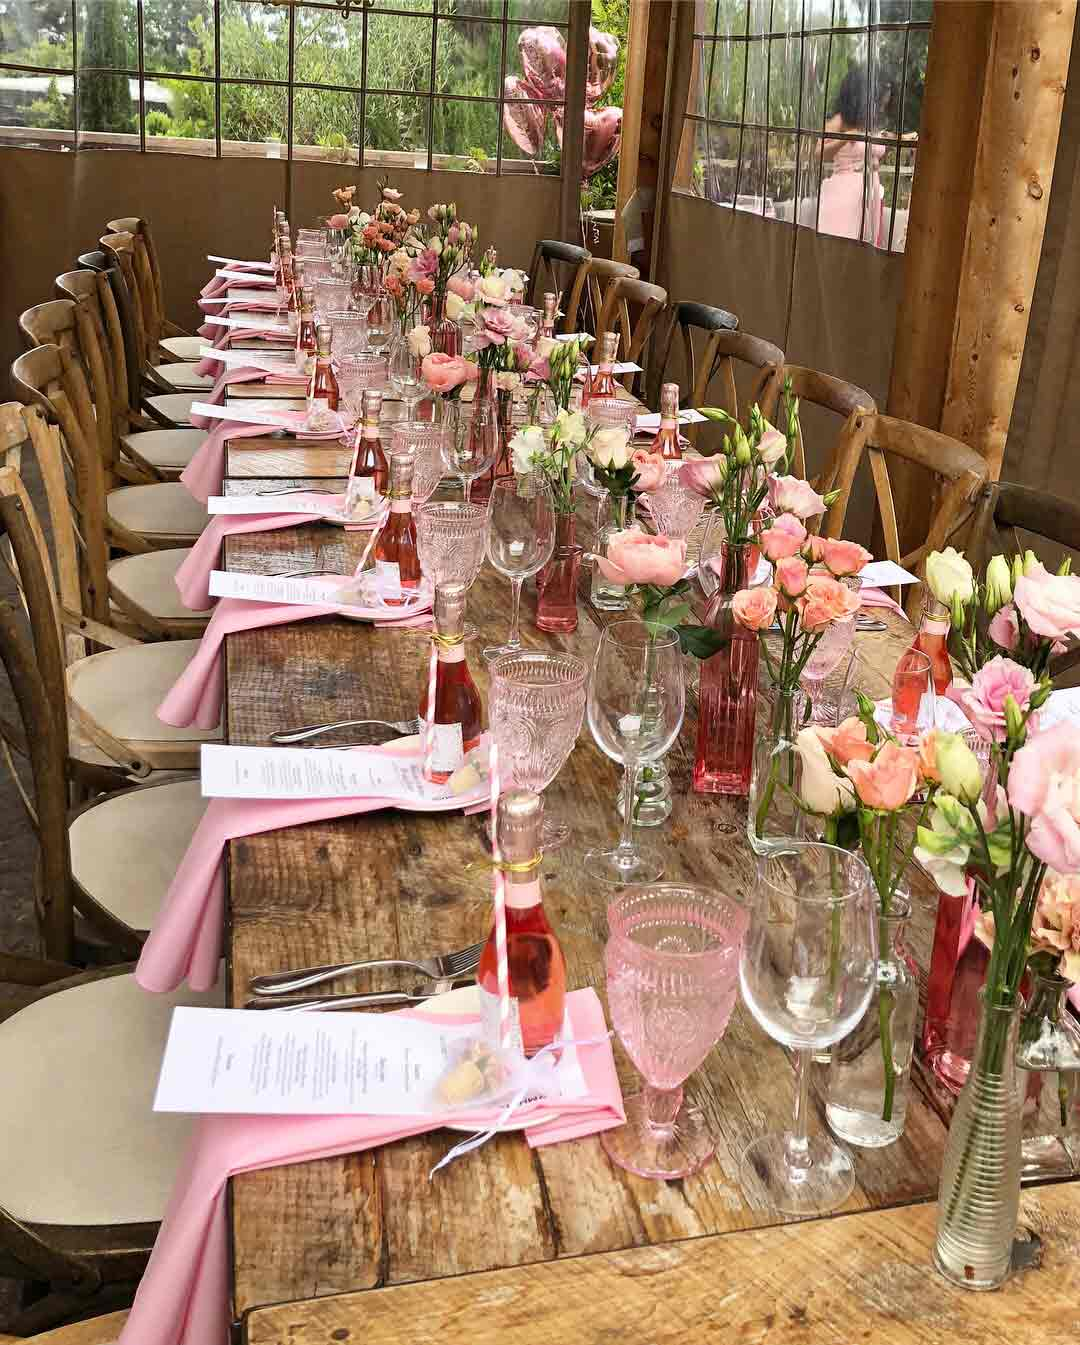 An image of a dining set up of pink napkins, pink glasses, a small rosa bottle and pink roses in pink vases